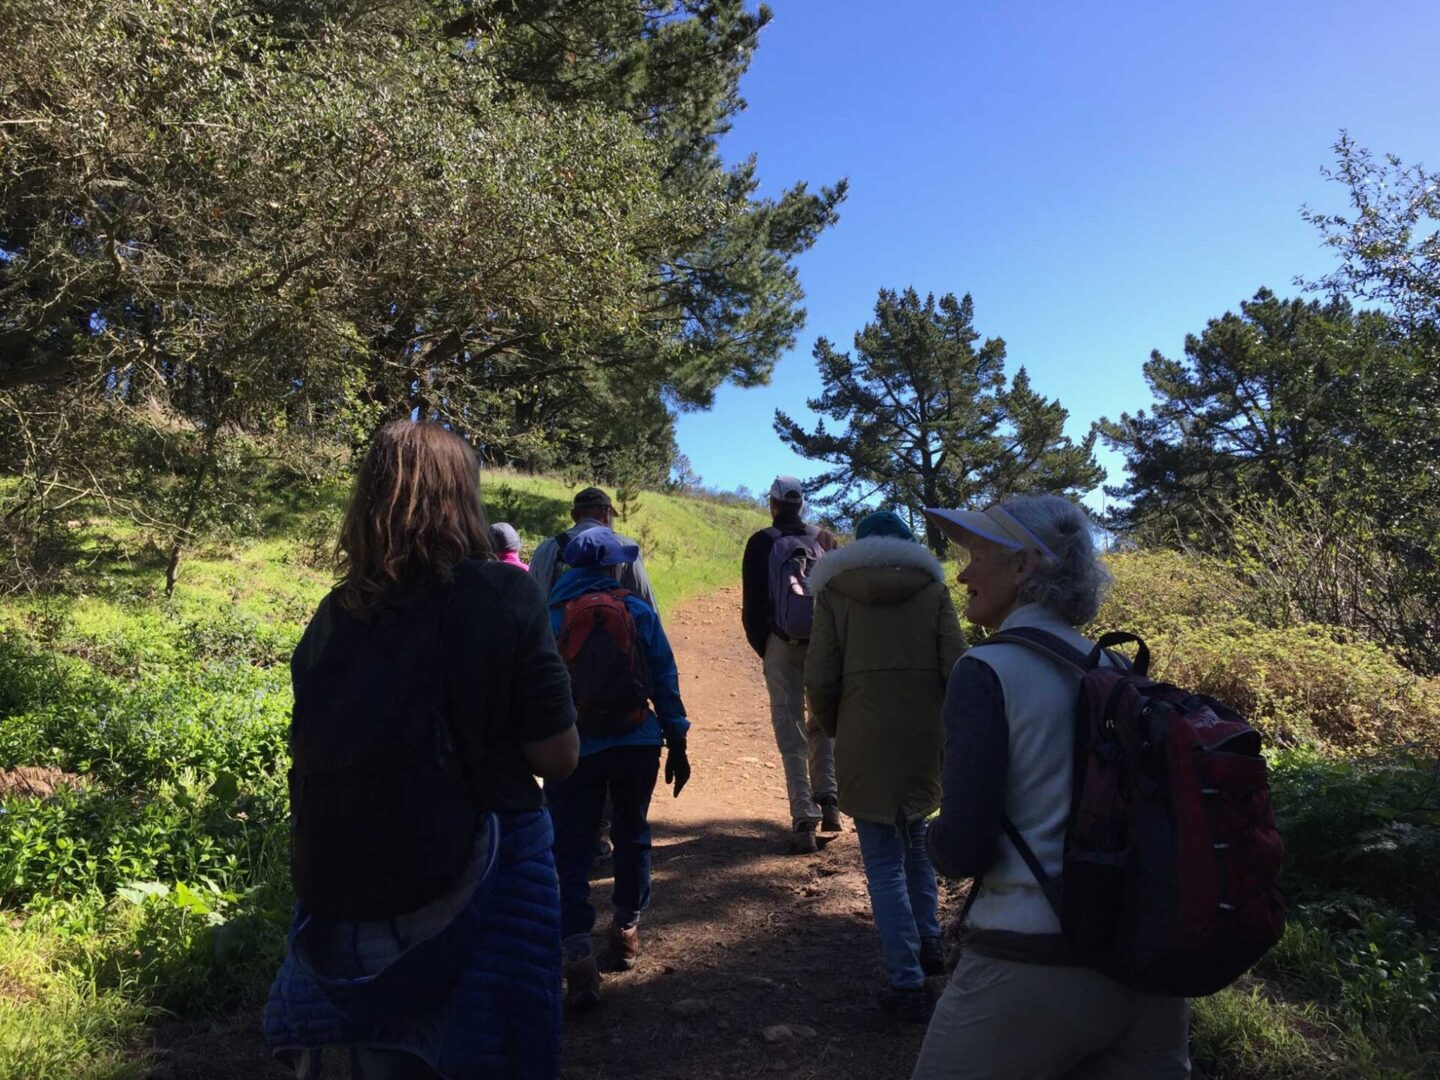 TSCG team retreat - hiking in Tilden Regional Park, Orinda, California